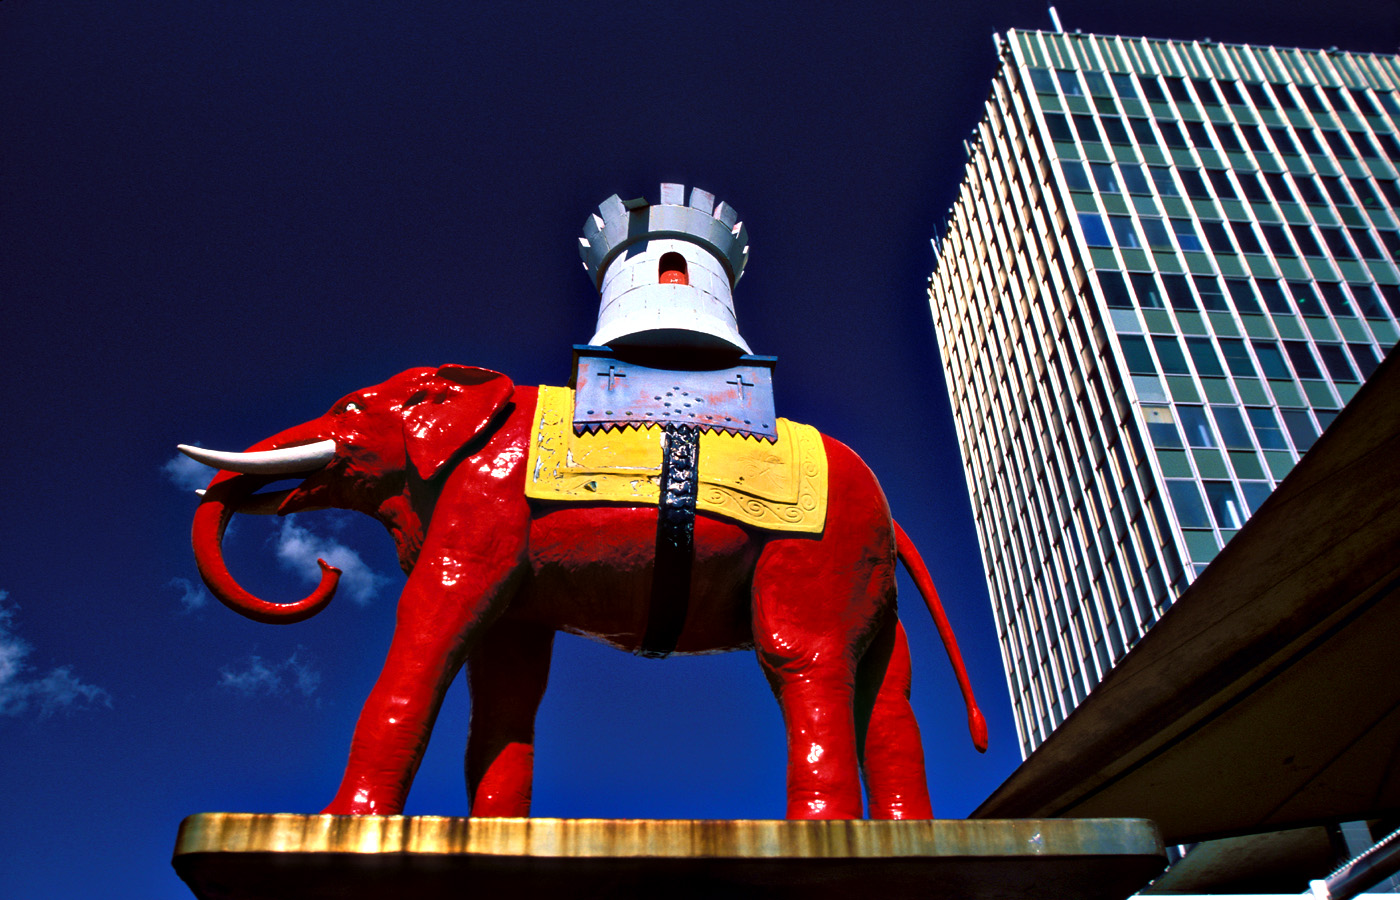 Elephant___Castle_stock_image.jpg